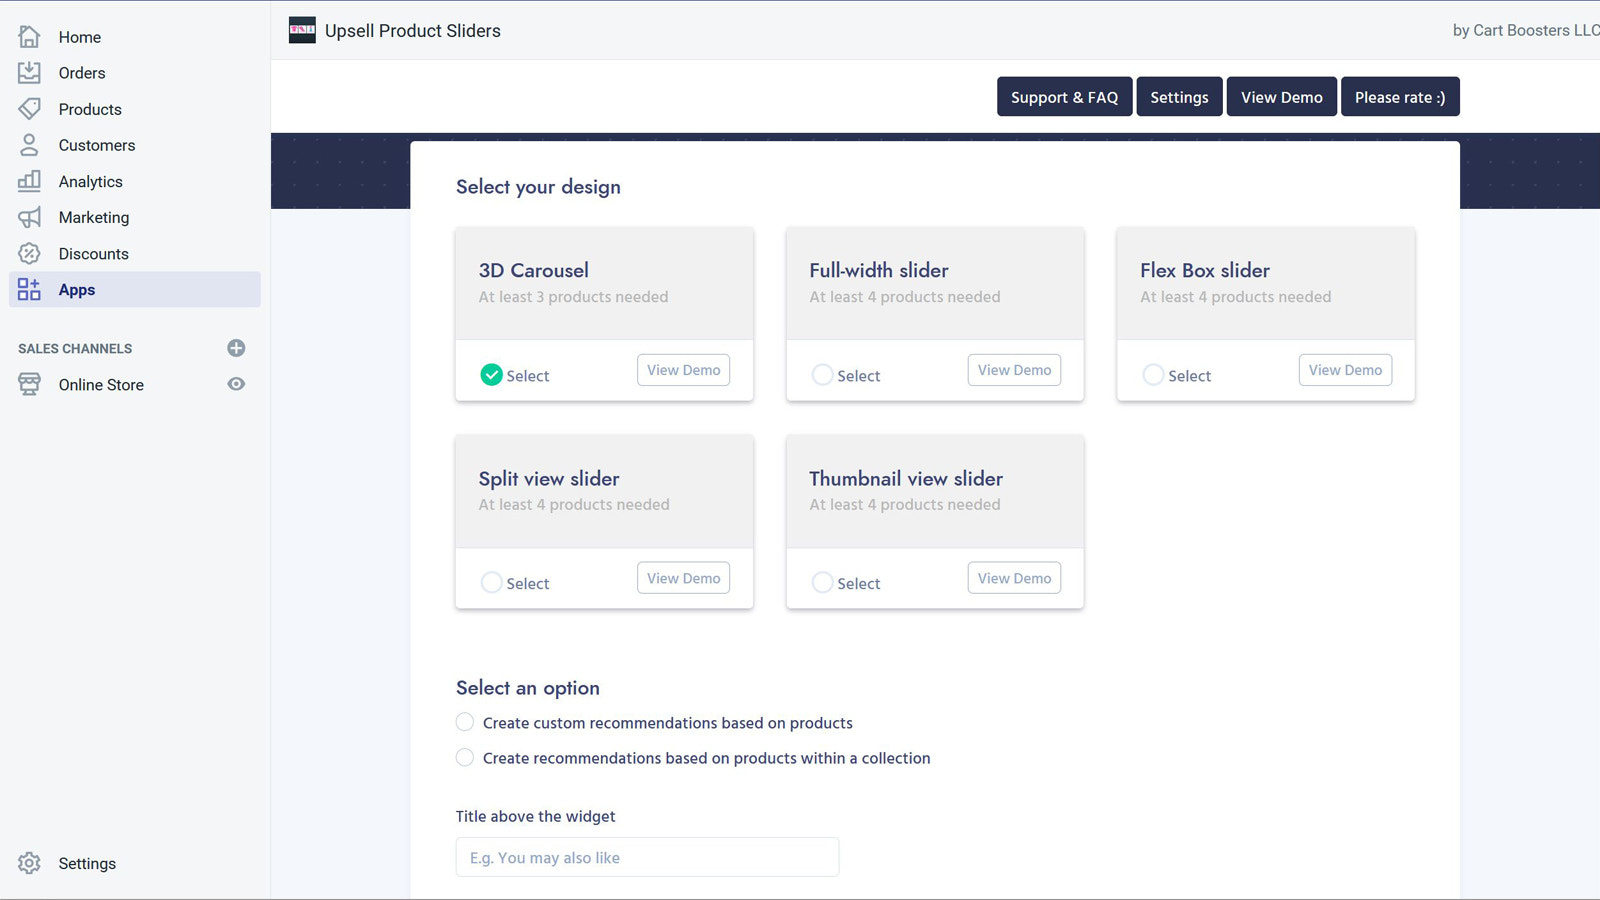 Upsell product sliders app's dashboard